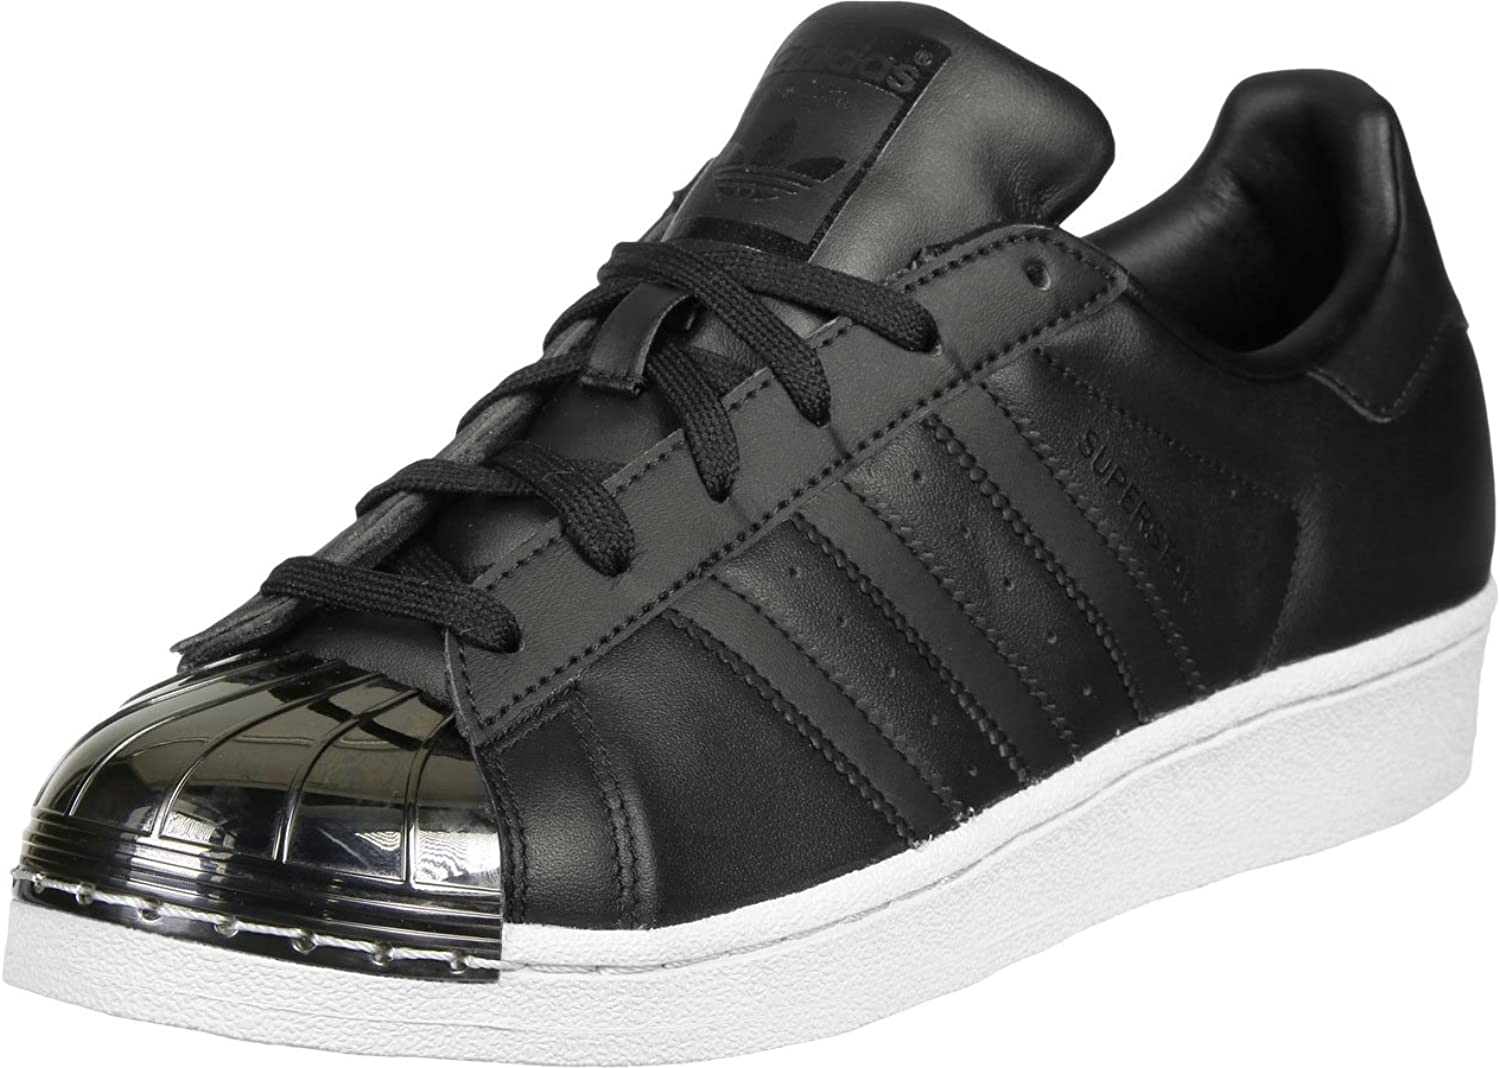 Exagerar Arbitraje Inmuebles  adidas Women's Superstar Metal Toe By2883 Trainers: Amazon.co.uk: Shoes &  Bags